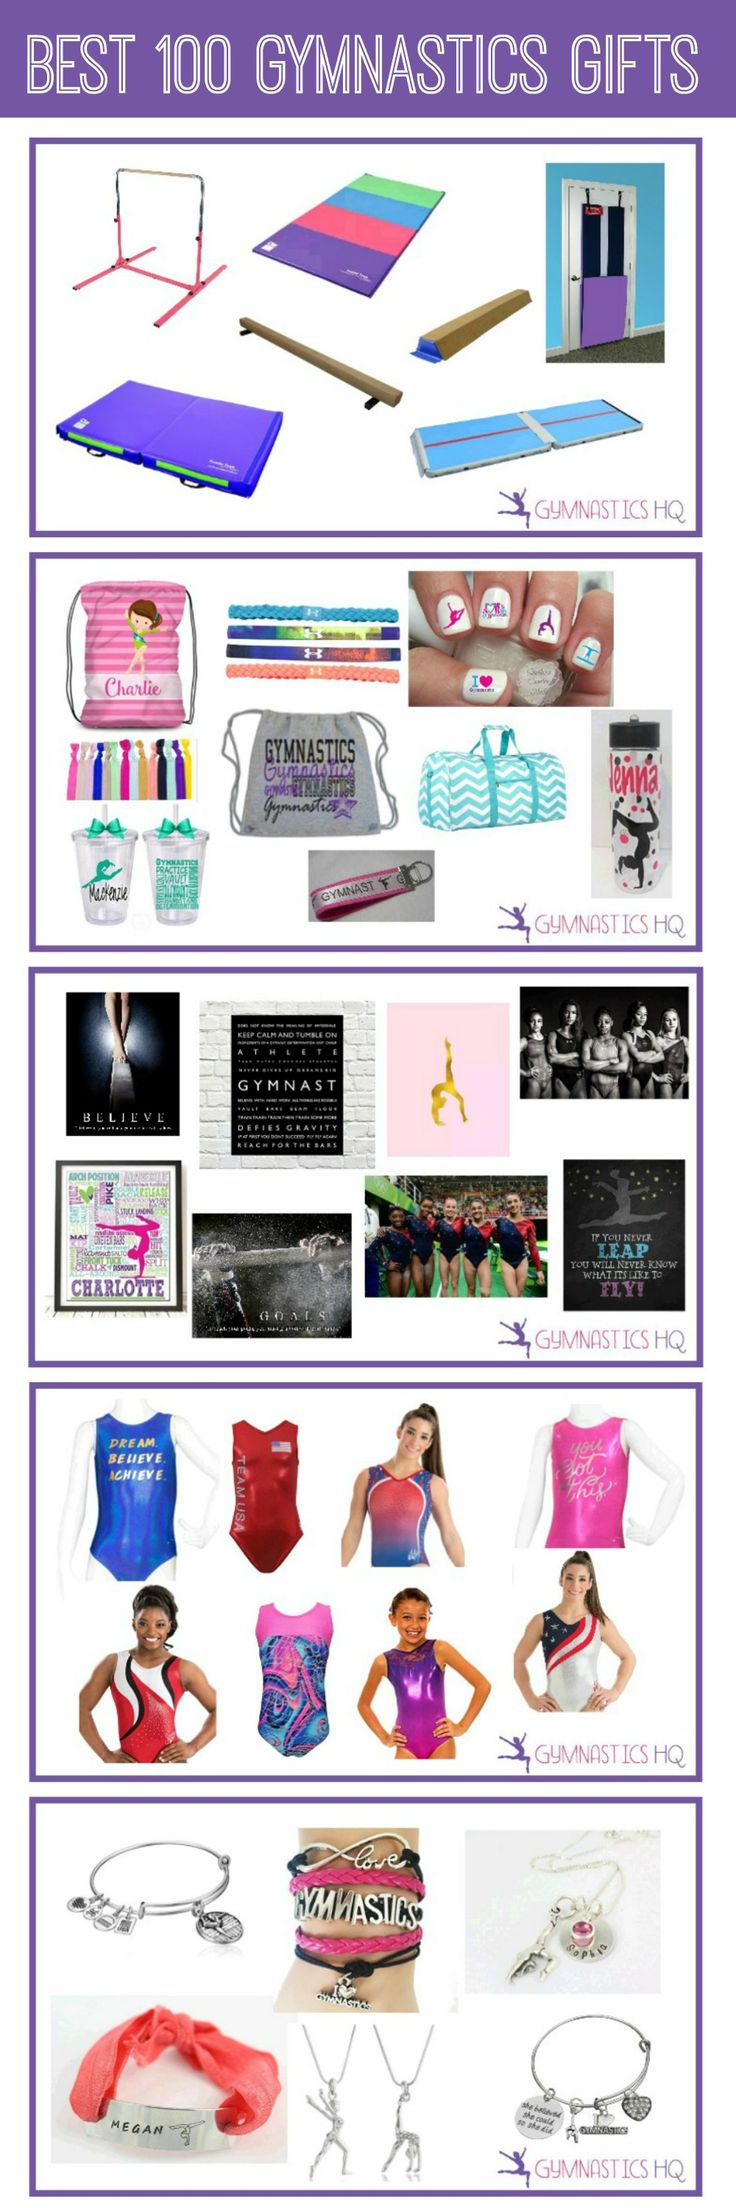 Gymnastics Gift Guide: Best 100 Gymnastics Gifts